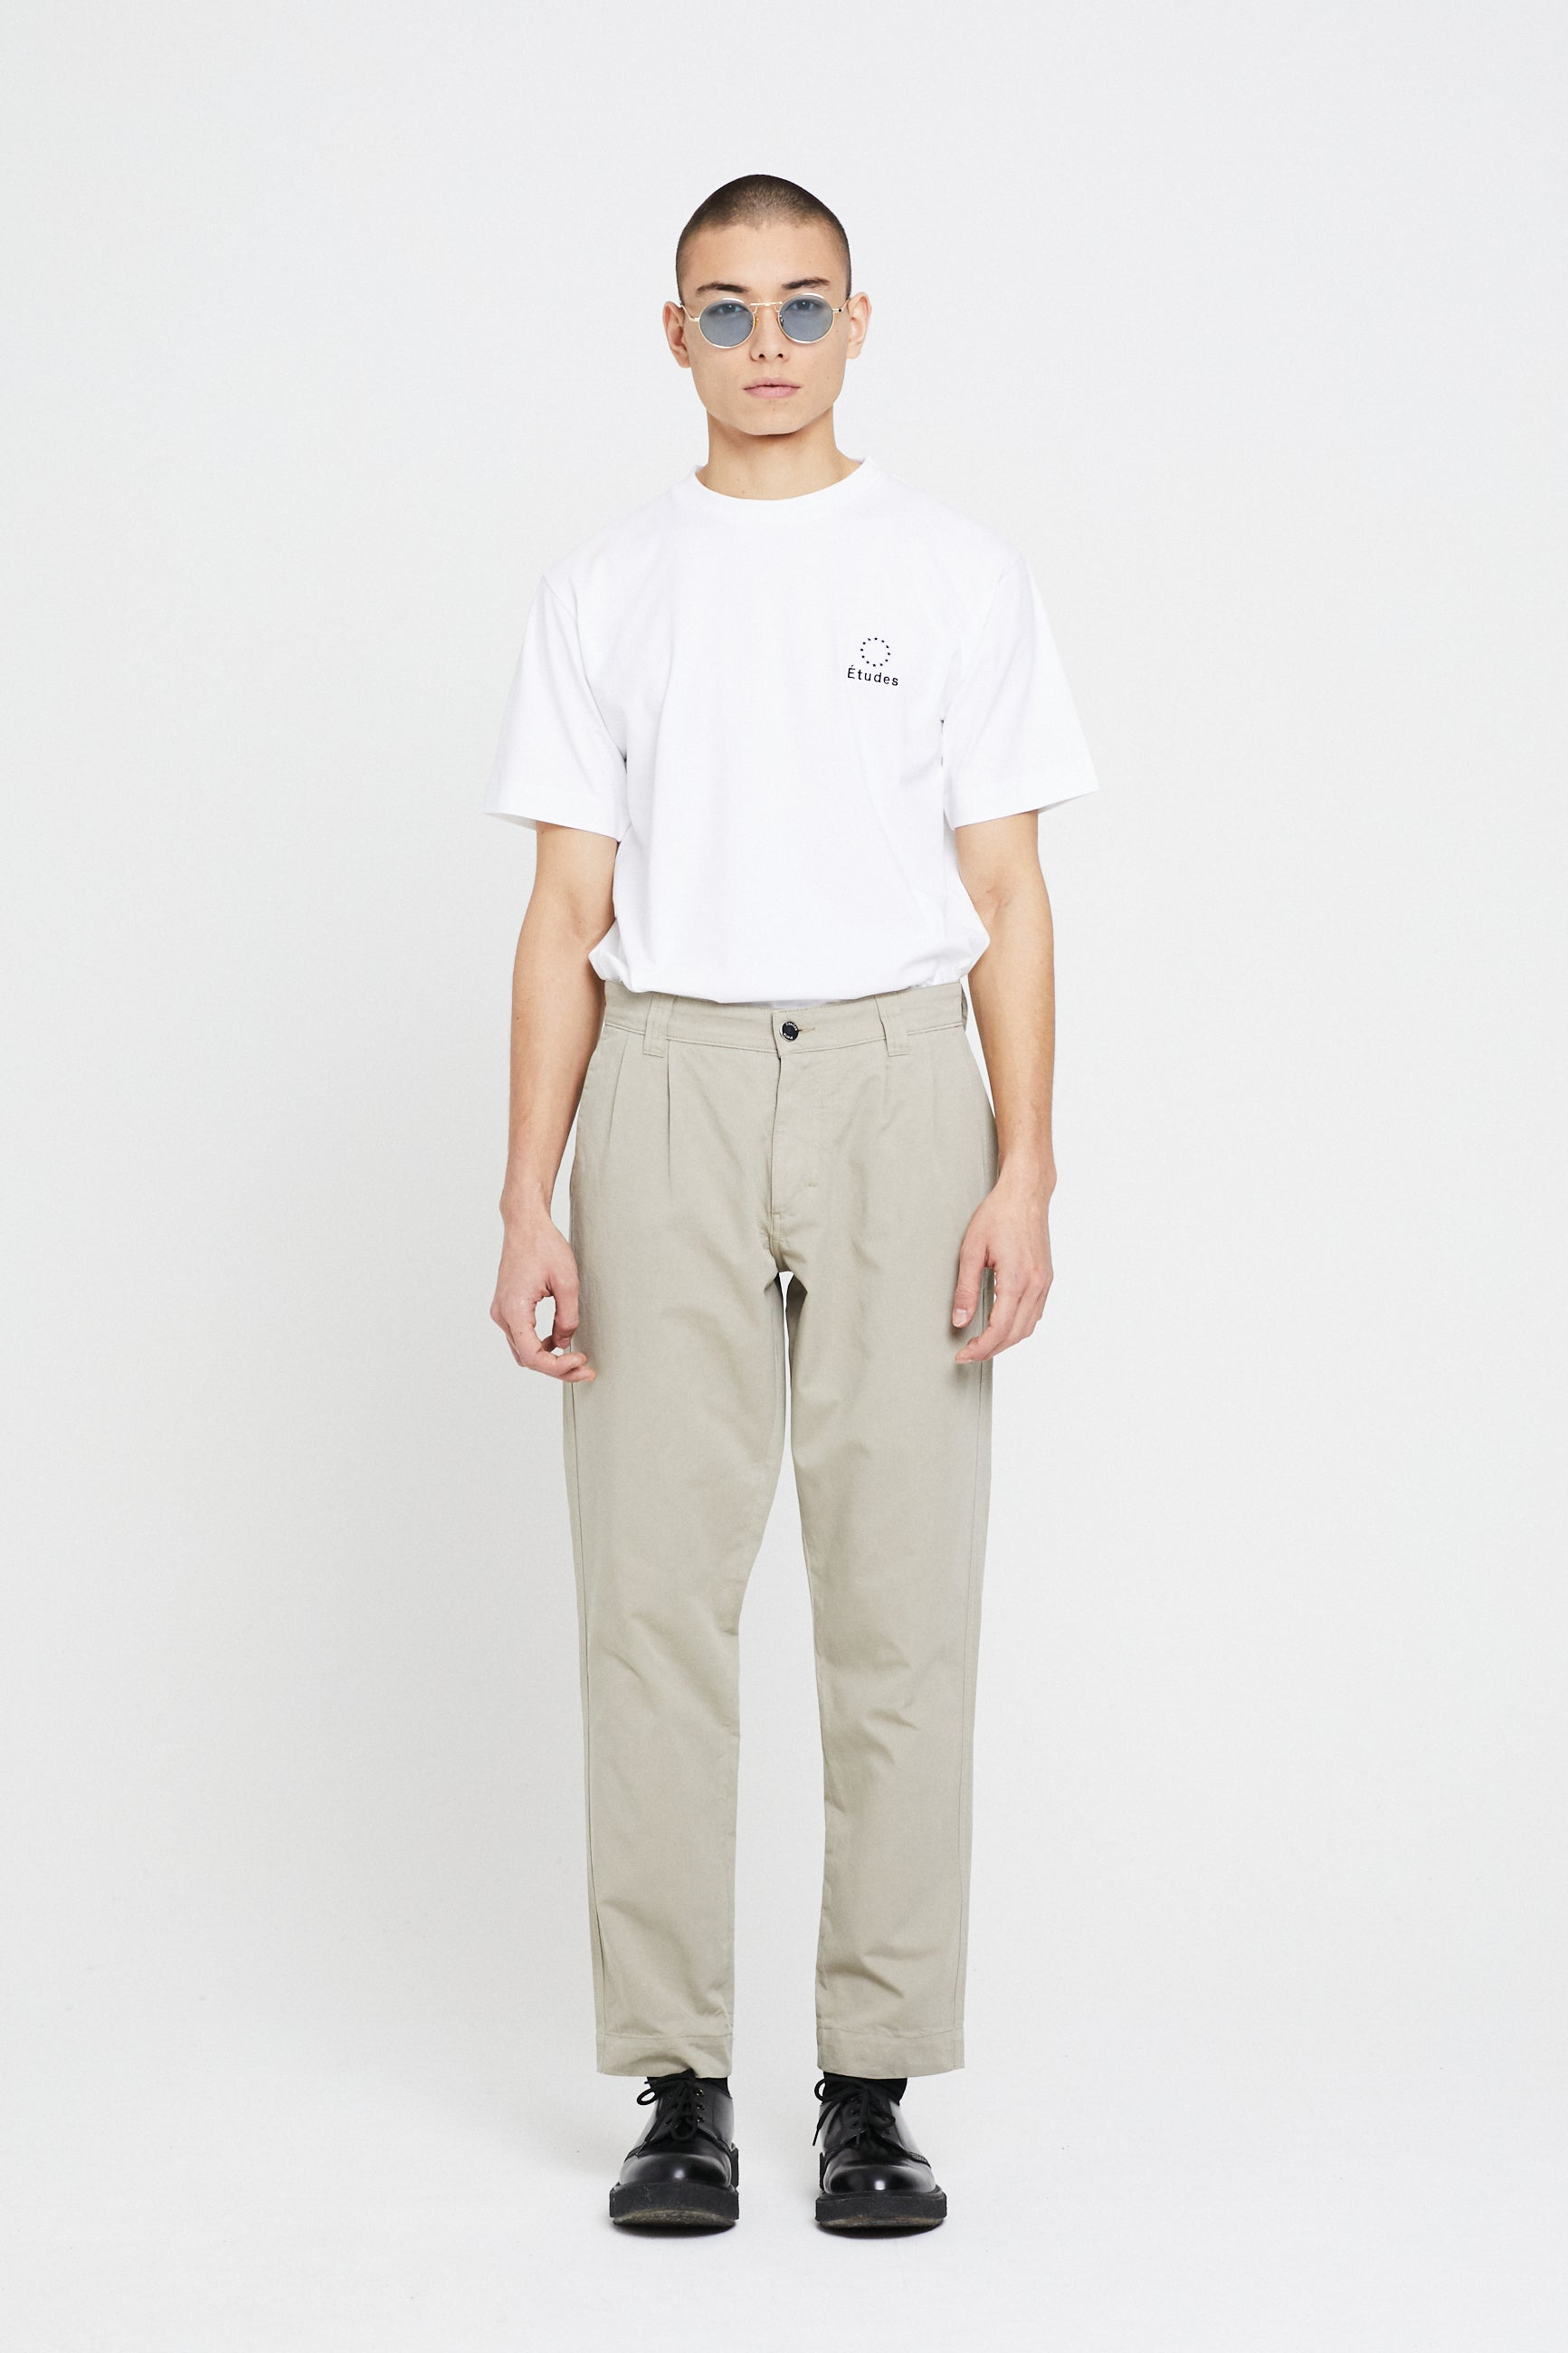 Études Cinema Garment Dyed Beige Trousers 1